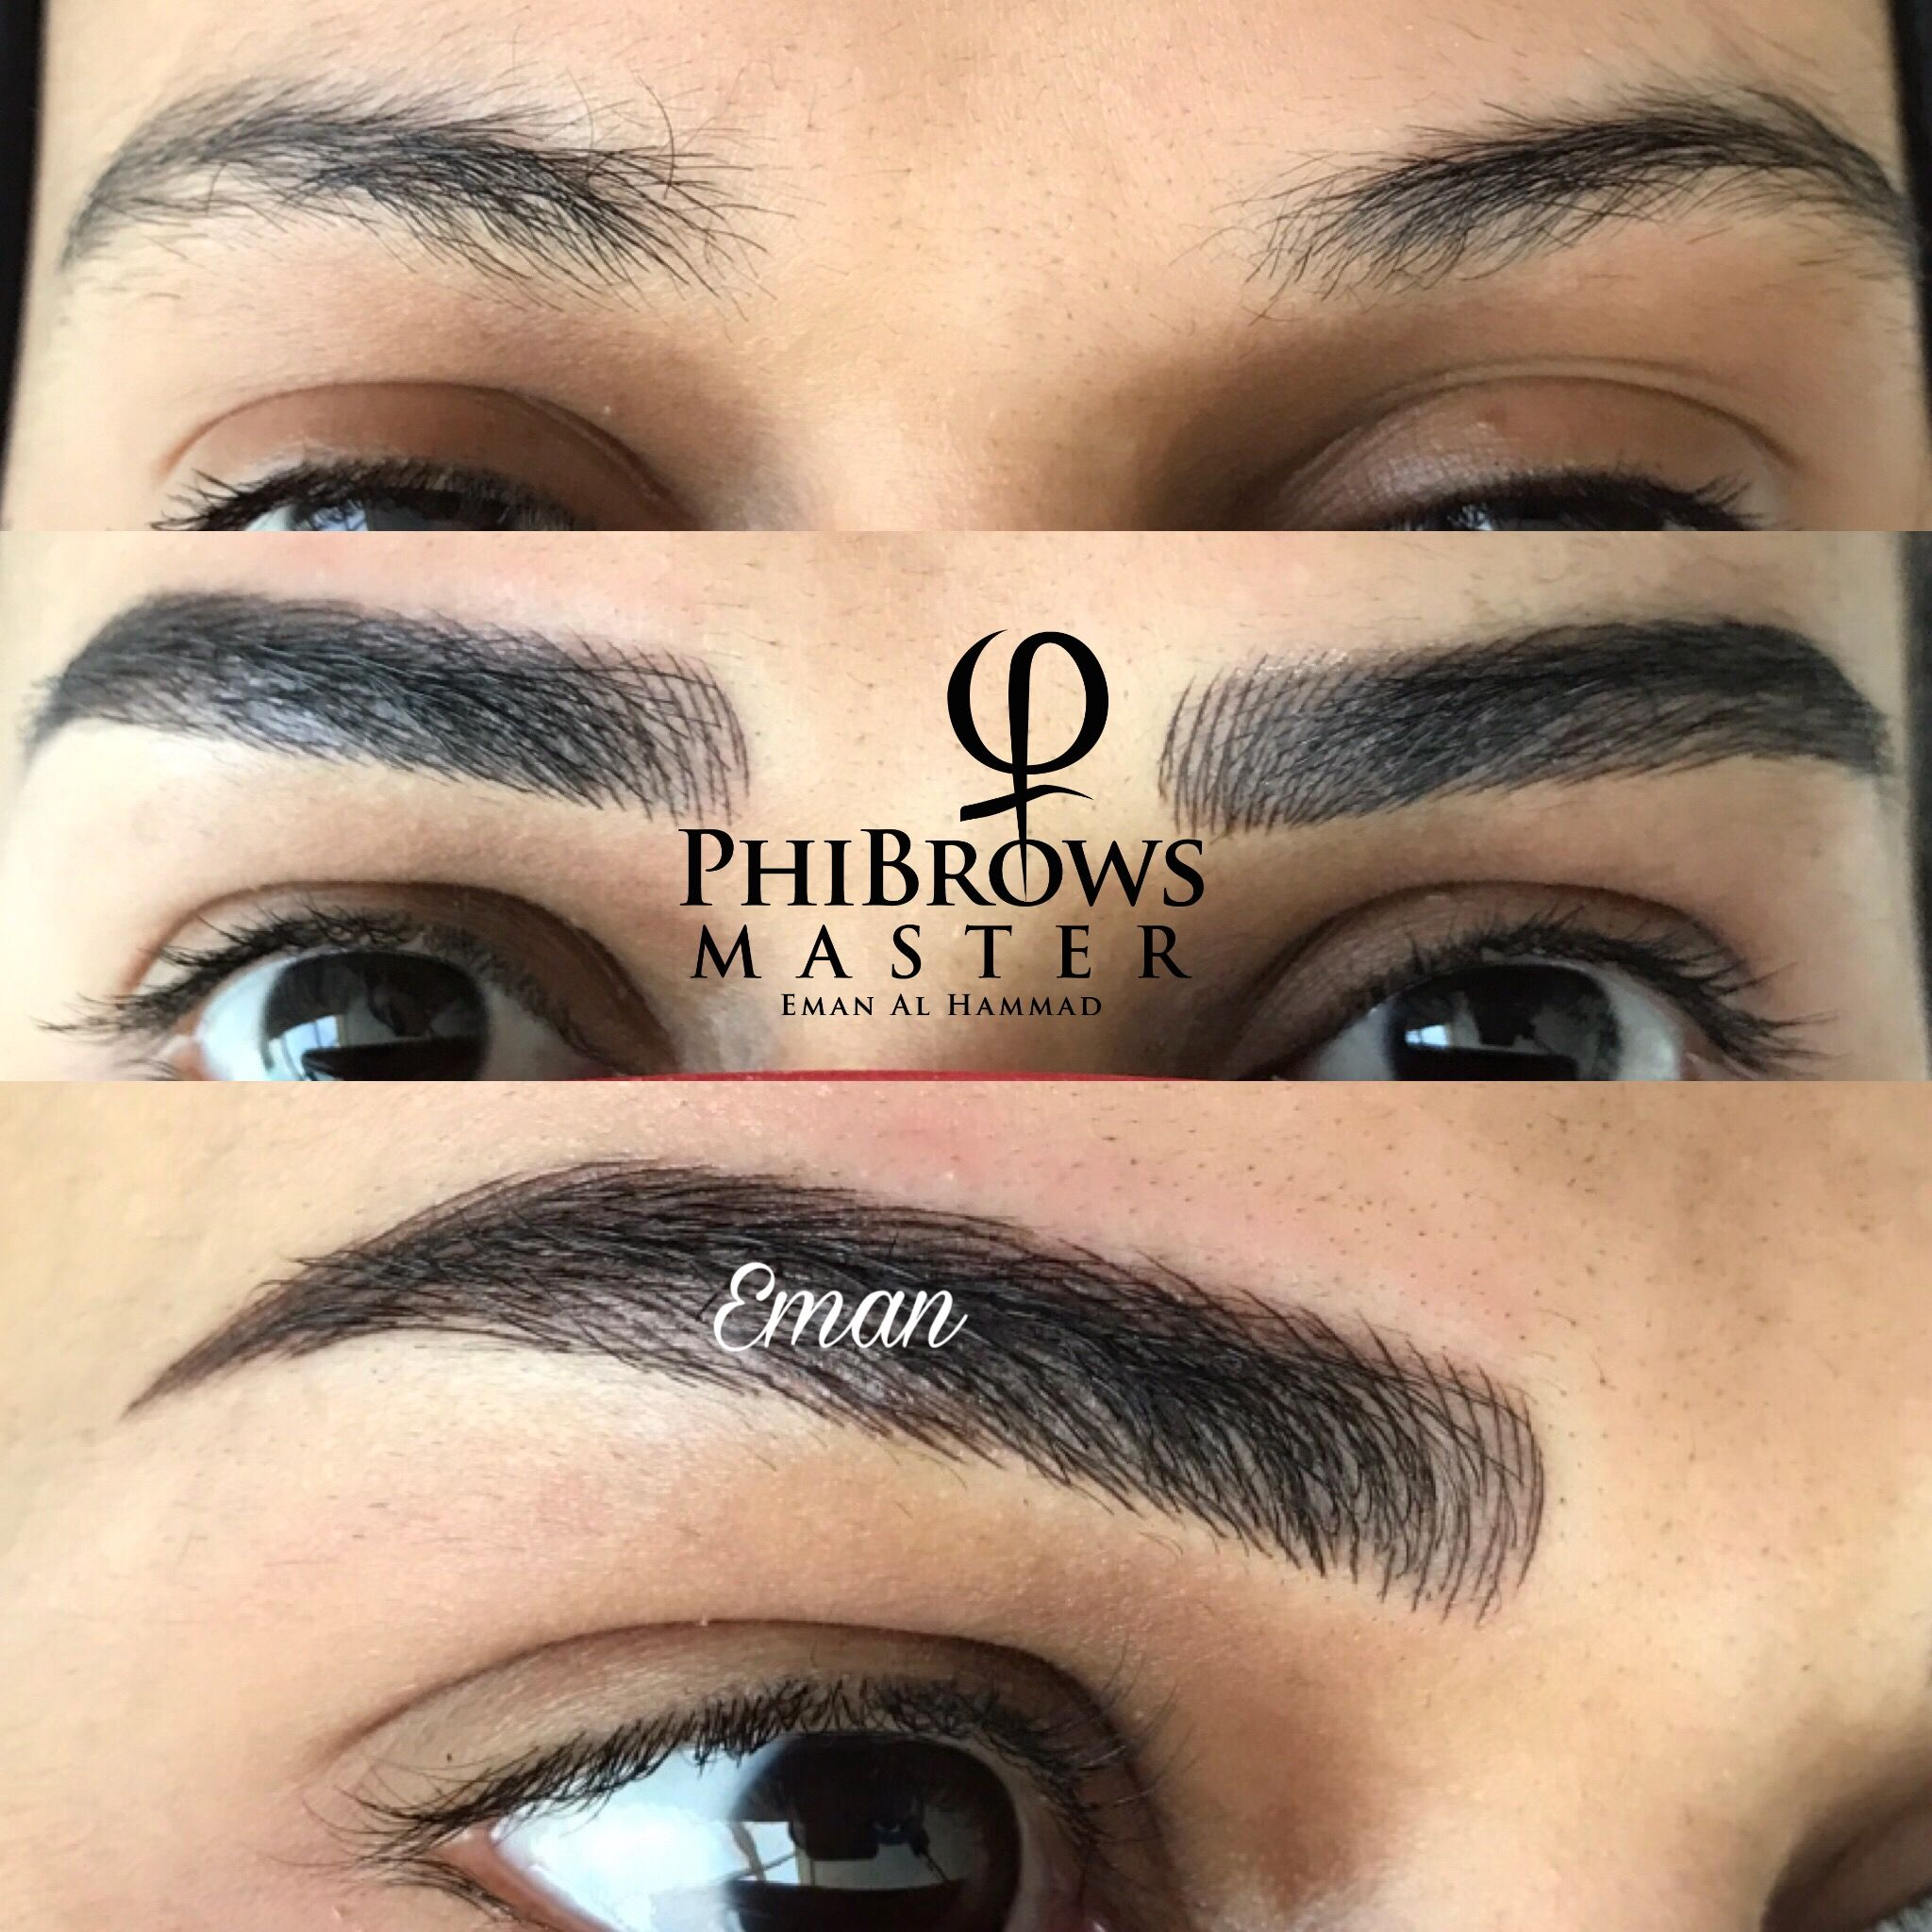 Pin By Gehan On رسم ع الوجه Microblading How To Draw Eyebrows Makeup Before And After